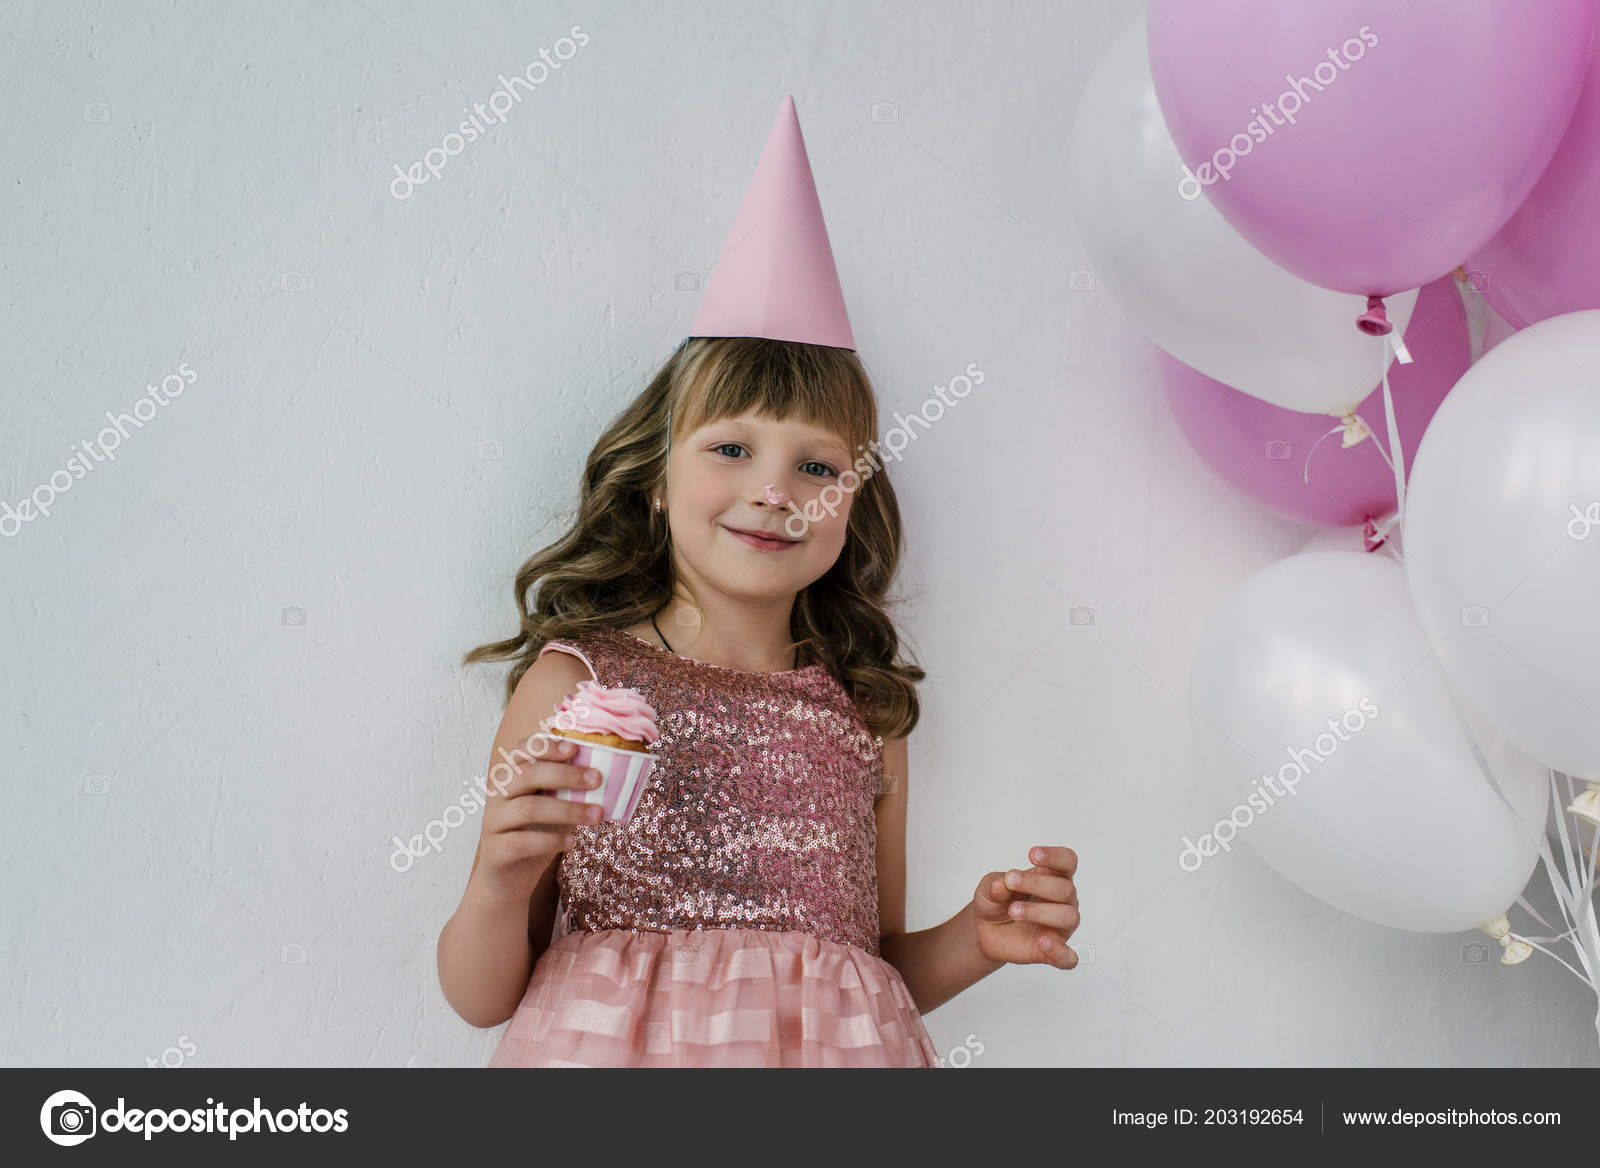 Happy Birthday Child Cone Dirty Nose Holding Cupcake Pink Balloons Stockfoto